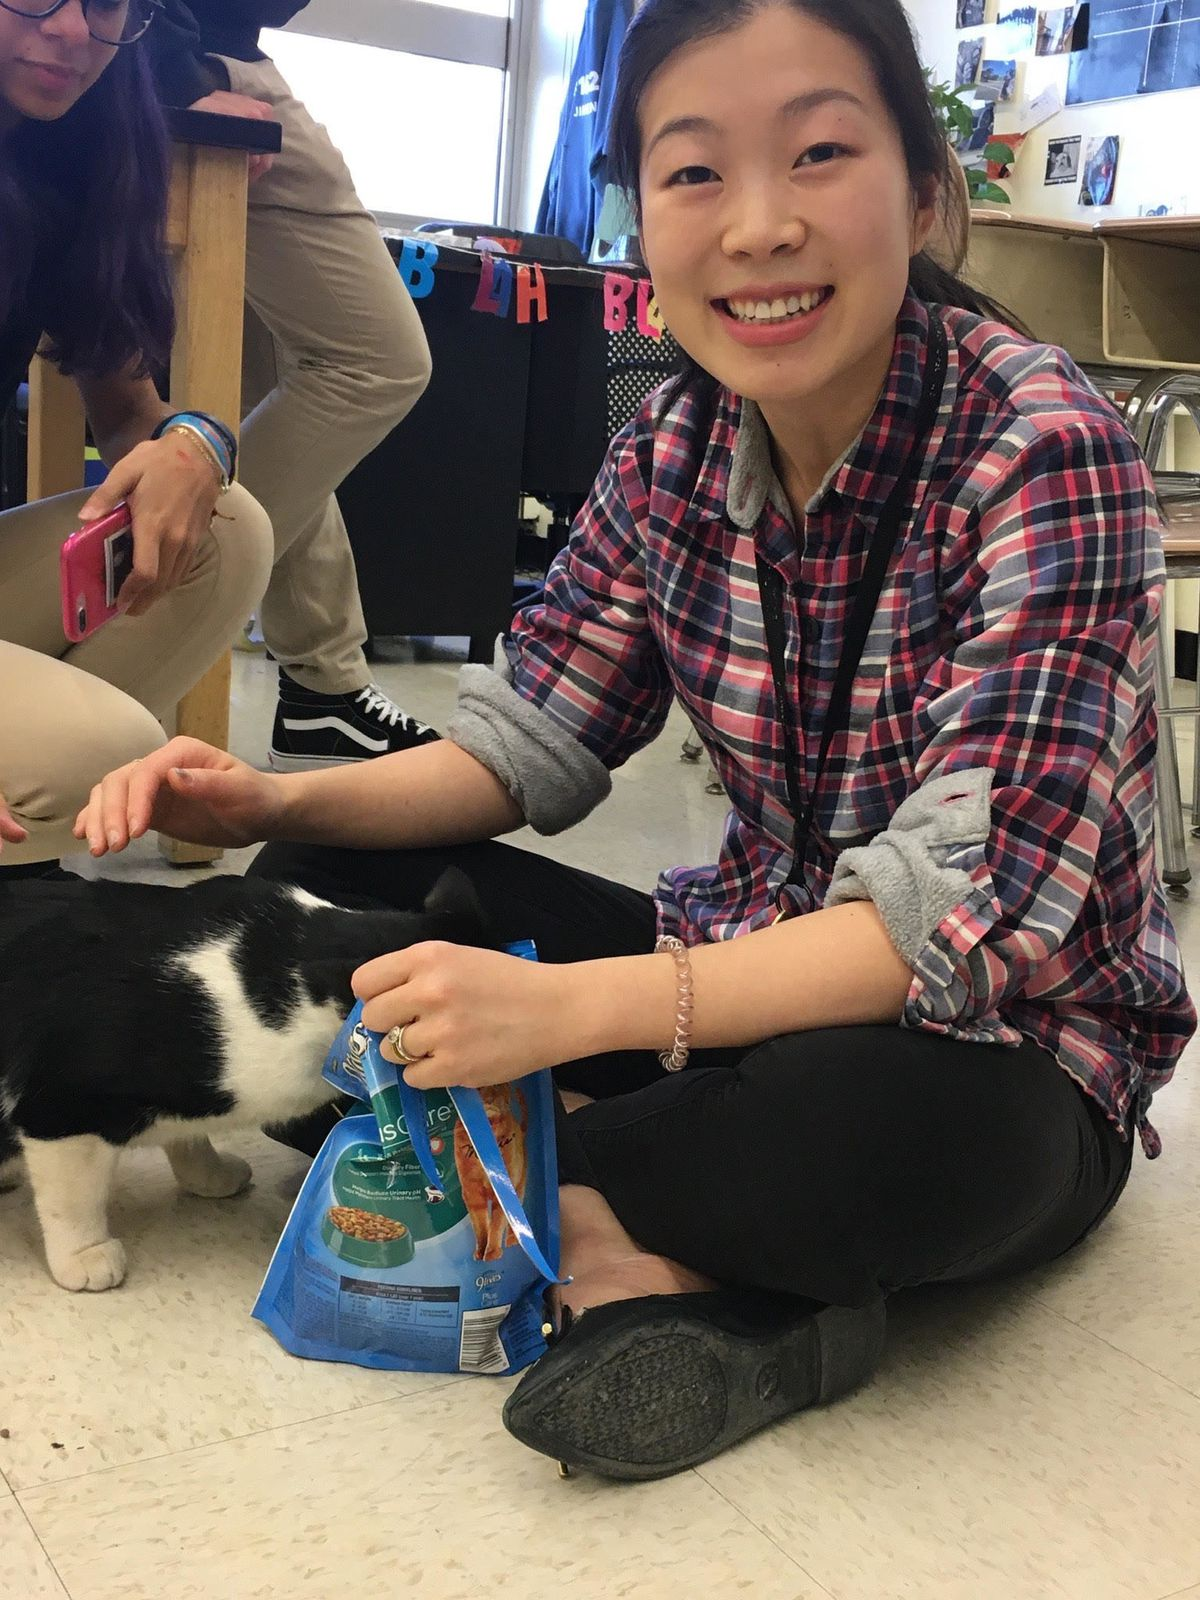 Nancy Yeh is seated on the floor in a classroom, petting a black and white cat while holding a bag of cat food. She is wearing a bracelet, blue and red plaid shirt and black pants, and there is a young woman next to her.